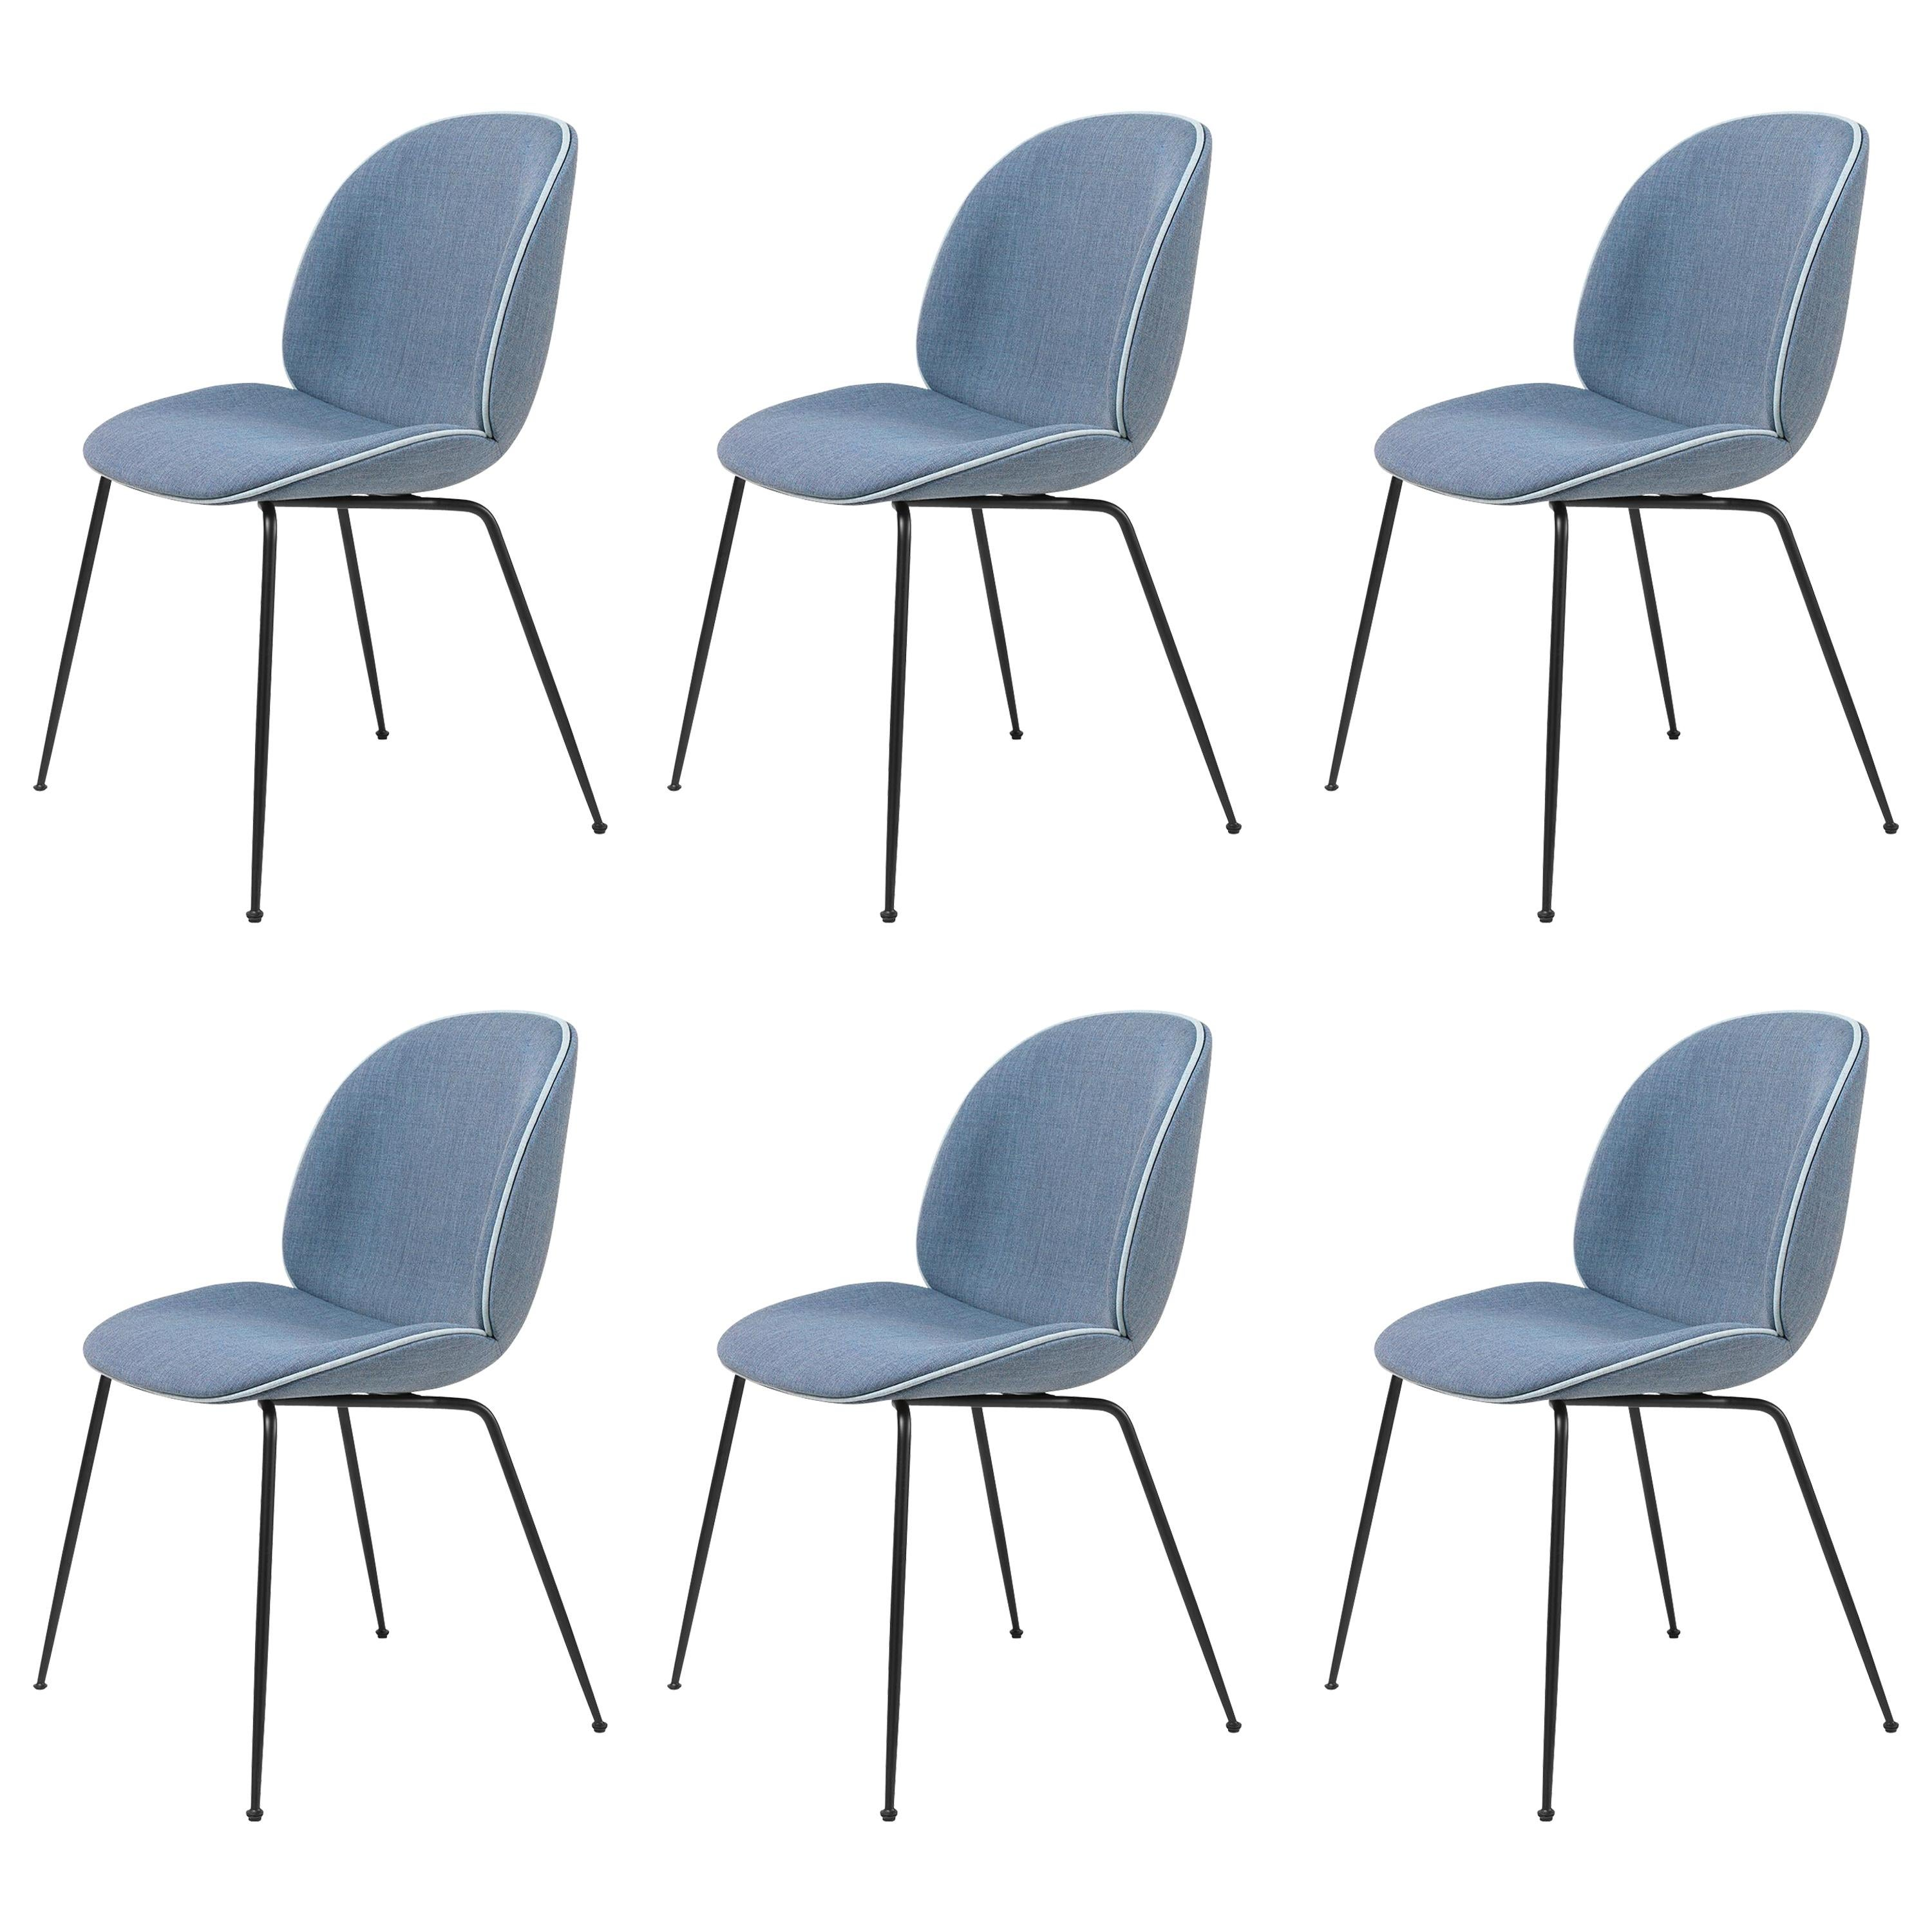 Set of Six Beetle Dining Chairs, Fully Upholstered, Conic Base, Matte Black